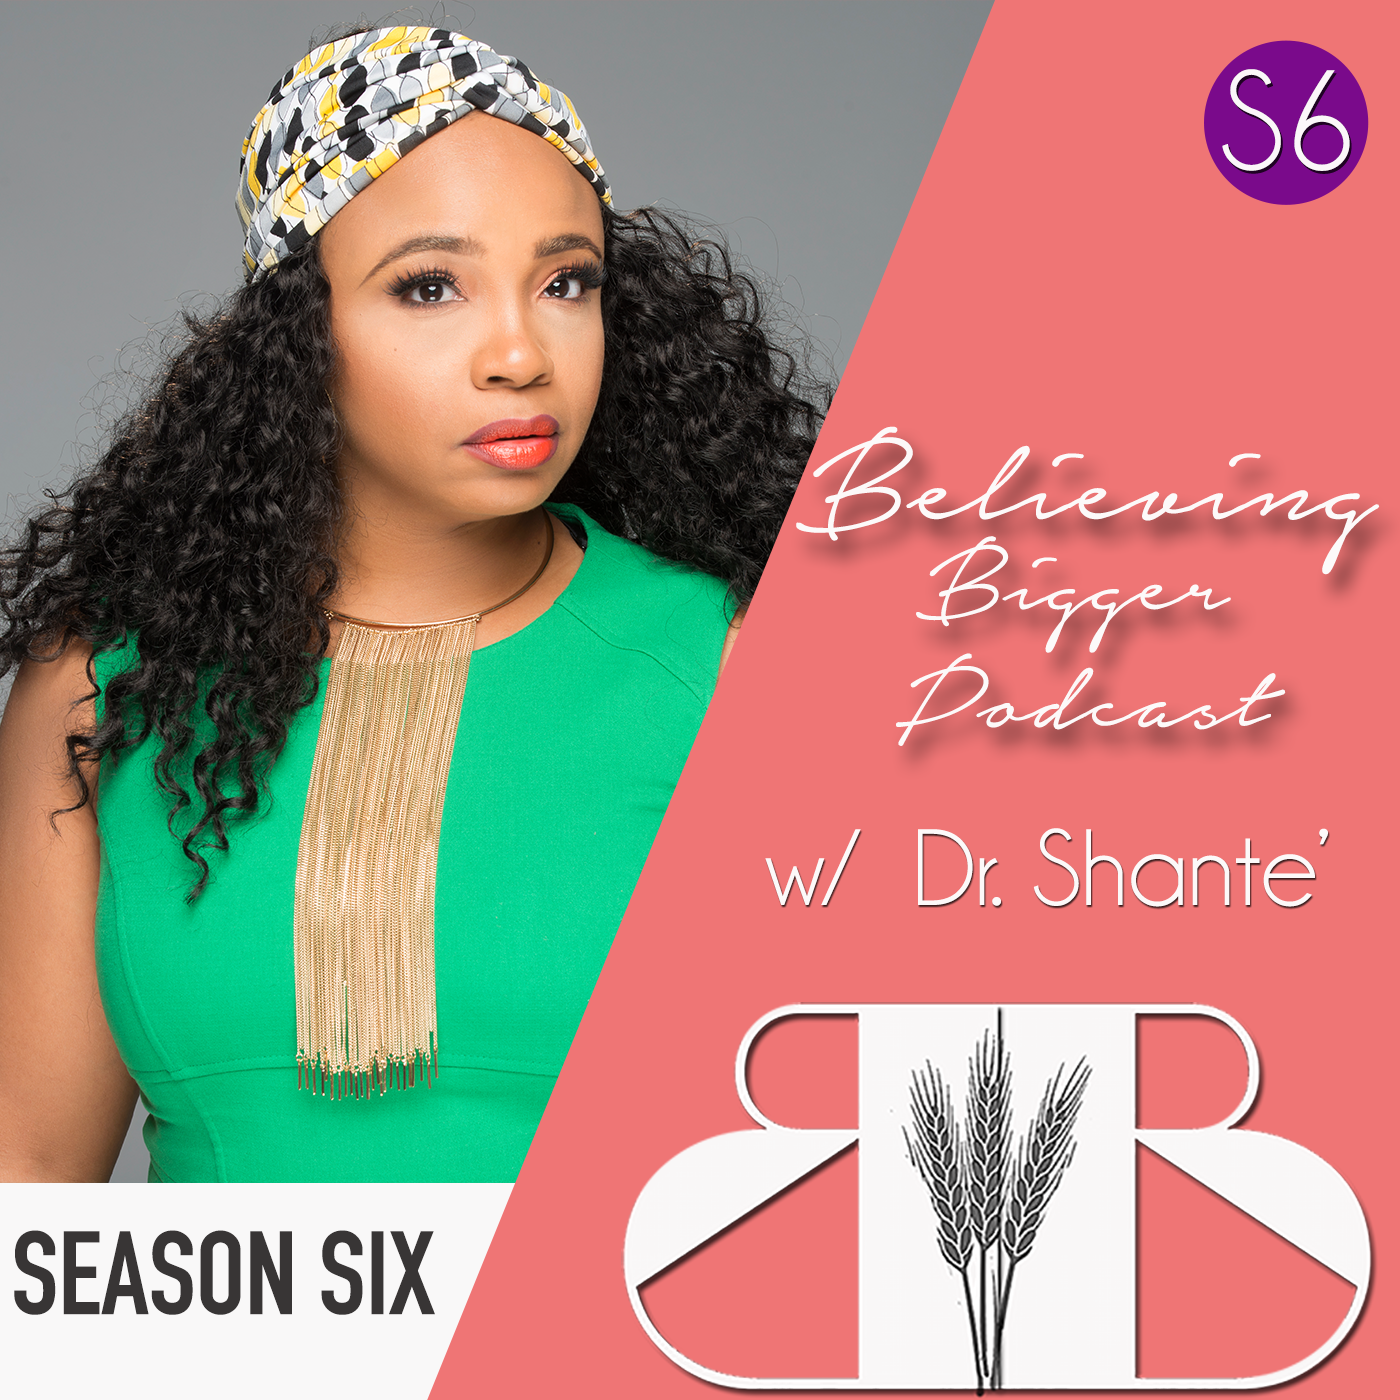 Artwork for podcast Believing Bigger with Dr. Shante